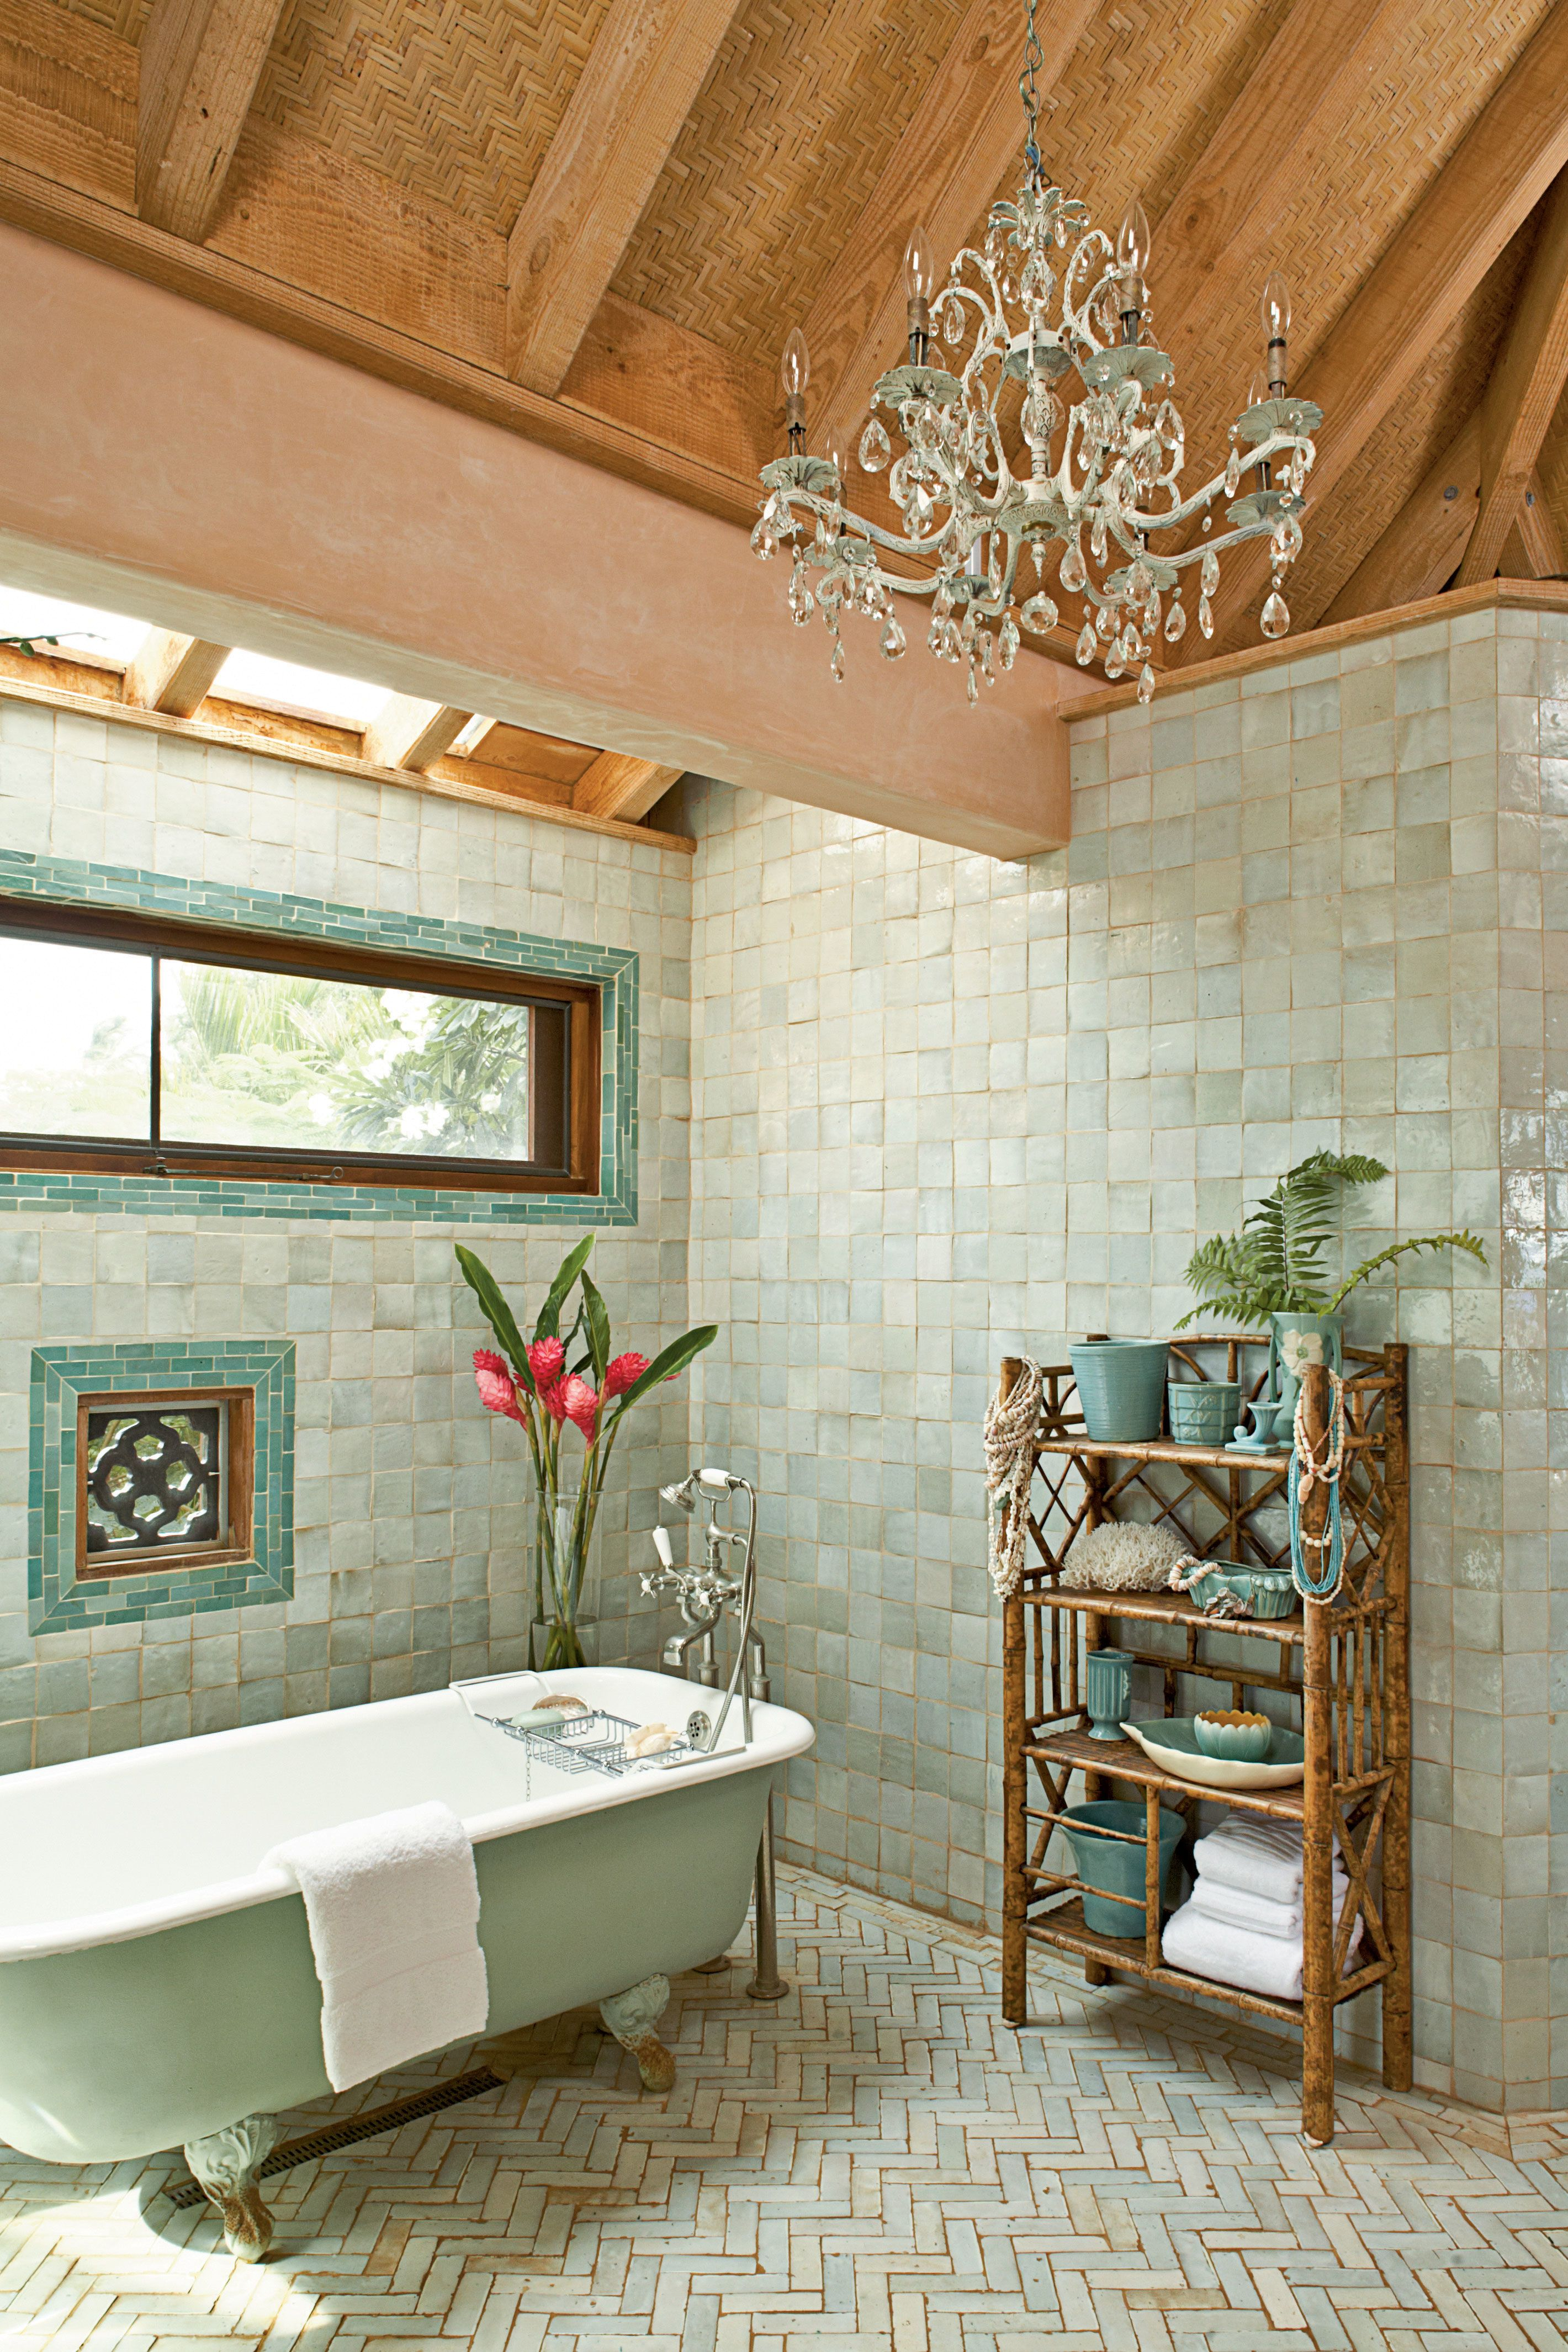 This master bathroom s shimmering Moroccan tiles are a softer take on the vibrant greenery outside and create a relaxing tone for a long soak